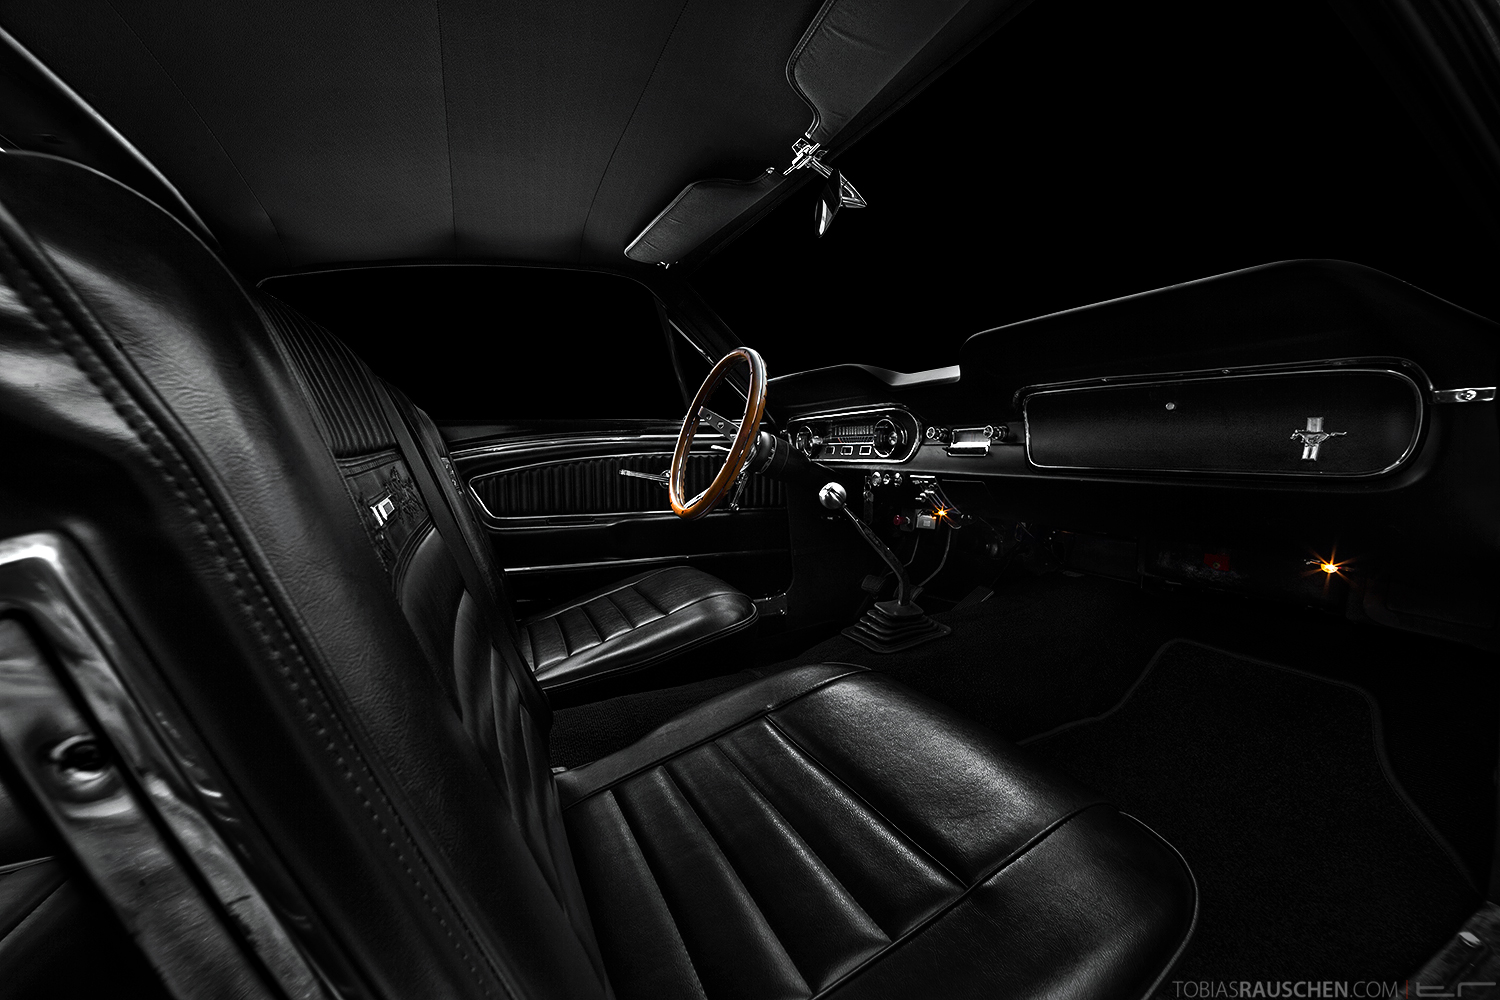 Fastback_Interieur